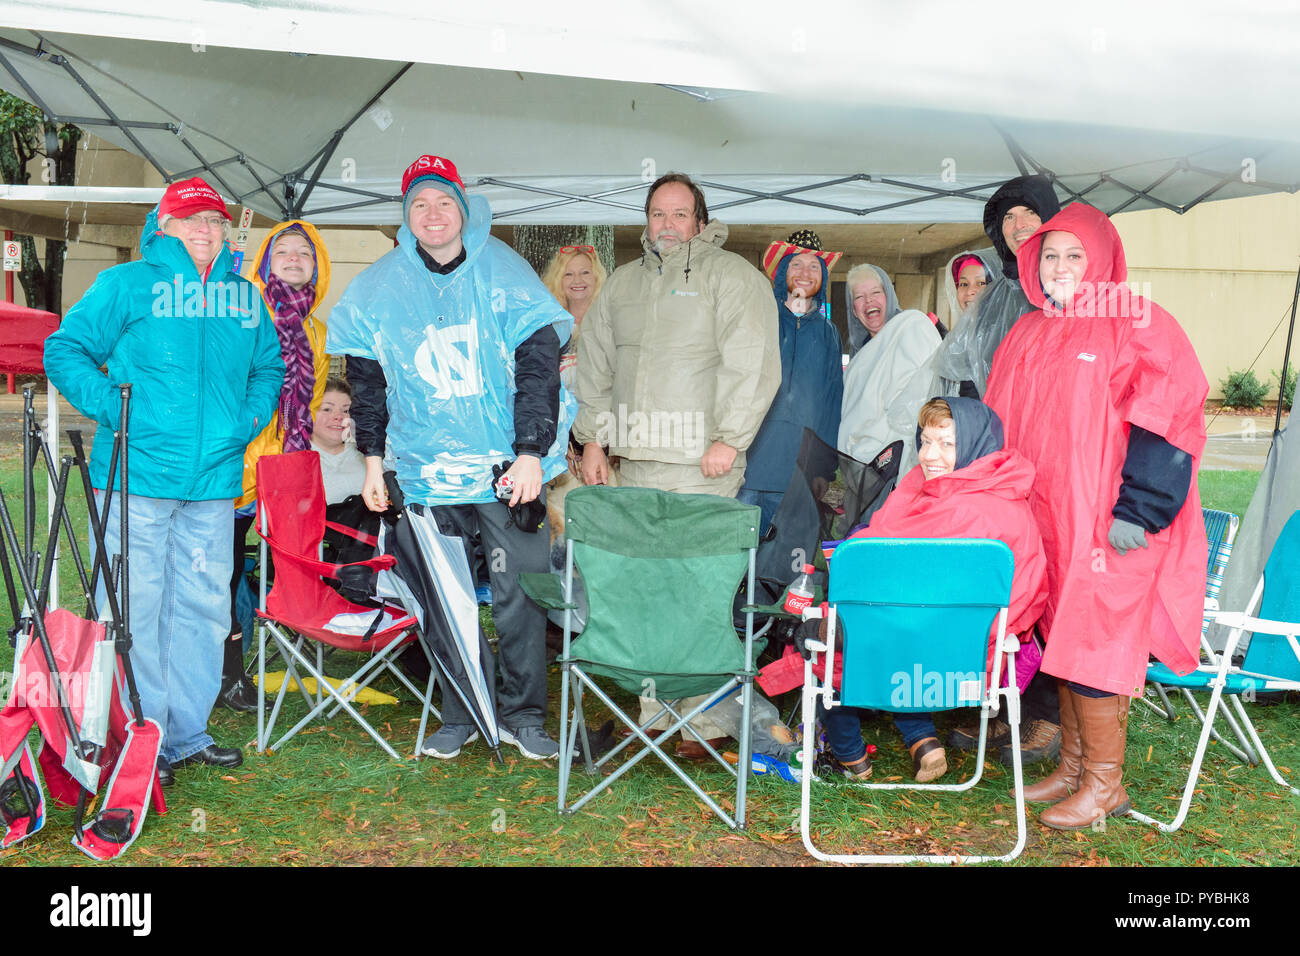 Charlotte, NC, USA. 26 October  2018. Trump supporters gladly brave the rain outside the Bojangles Arena in Charlotte in order to get good seats at the Trump MAGA Rally in Charlotte, NC tonight. Some supporters arrived at 3pm on Thursday and have camped out in tents.  Credit: Castle Light Images / Alamy Live News Stock Photo